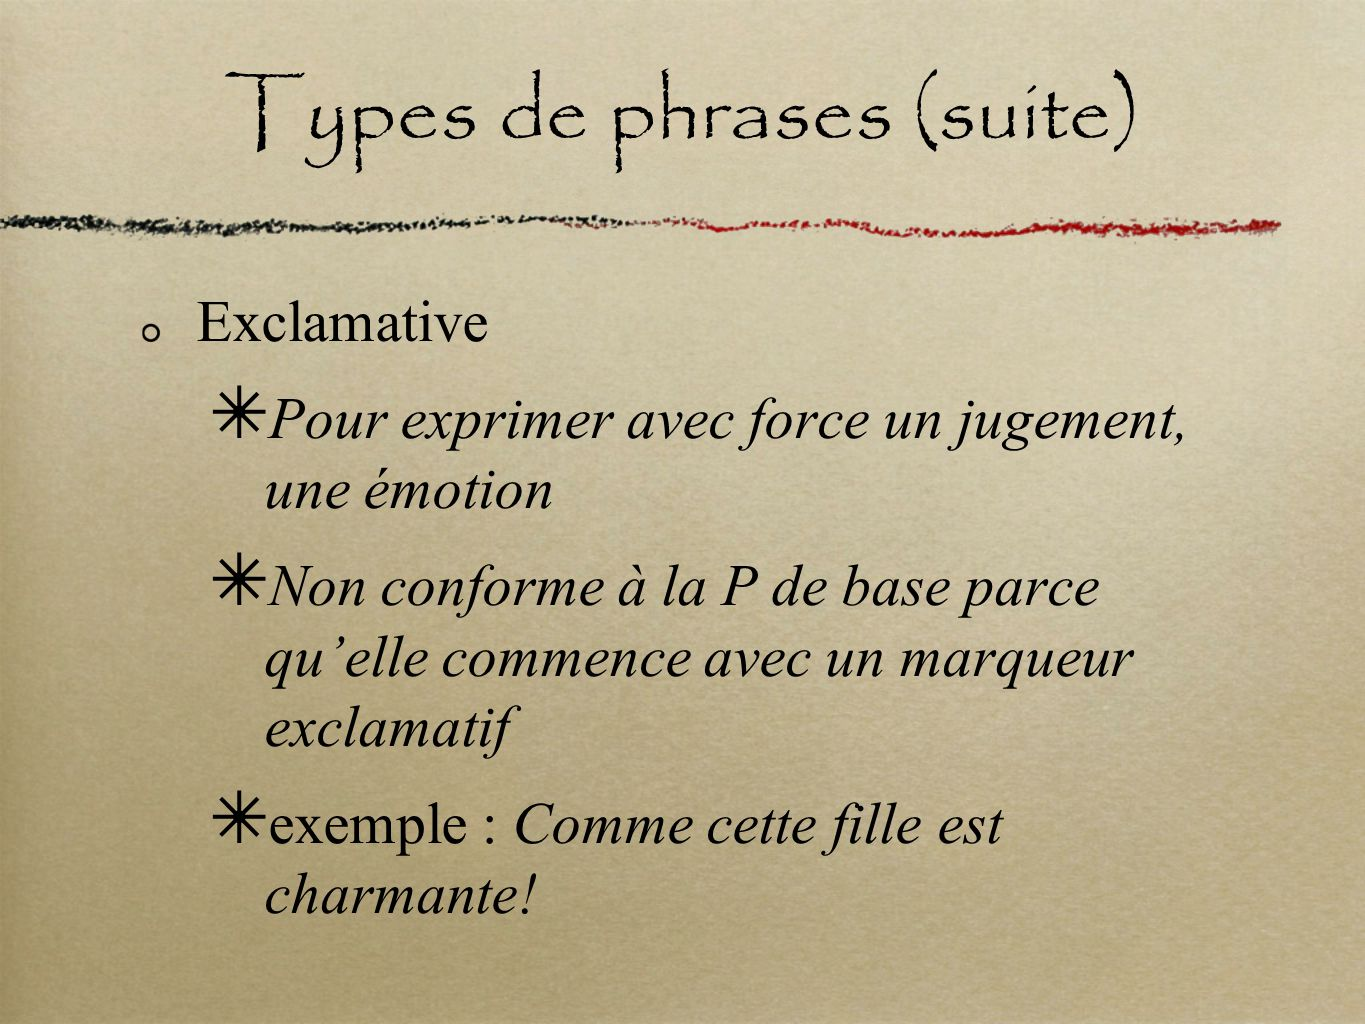 Types de phrases (suite)